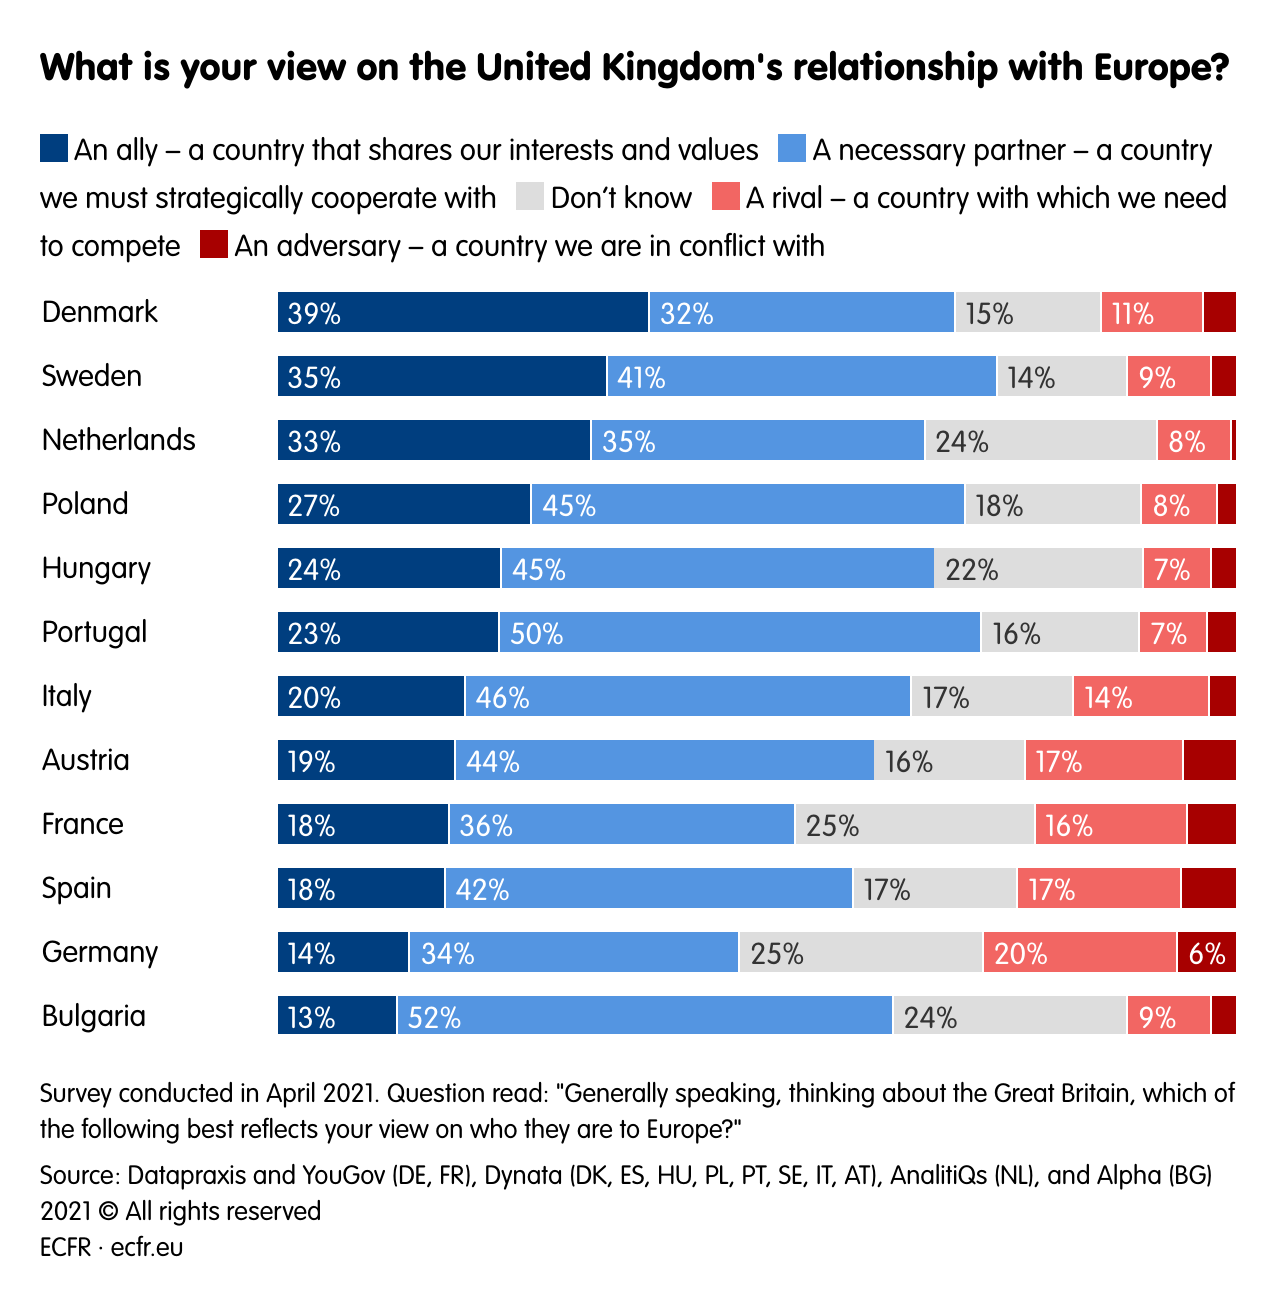 What is your view on the United Kingdom's relationship with Europe?